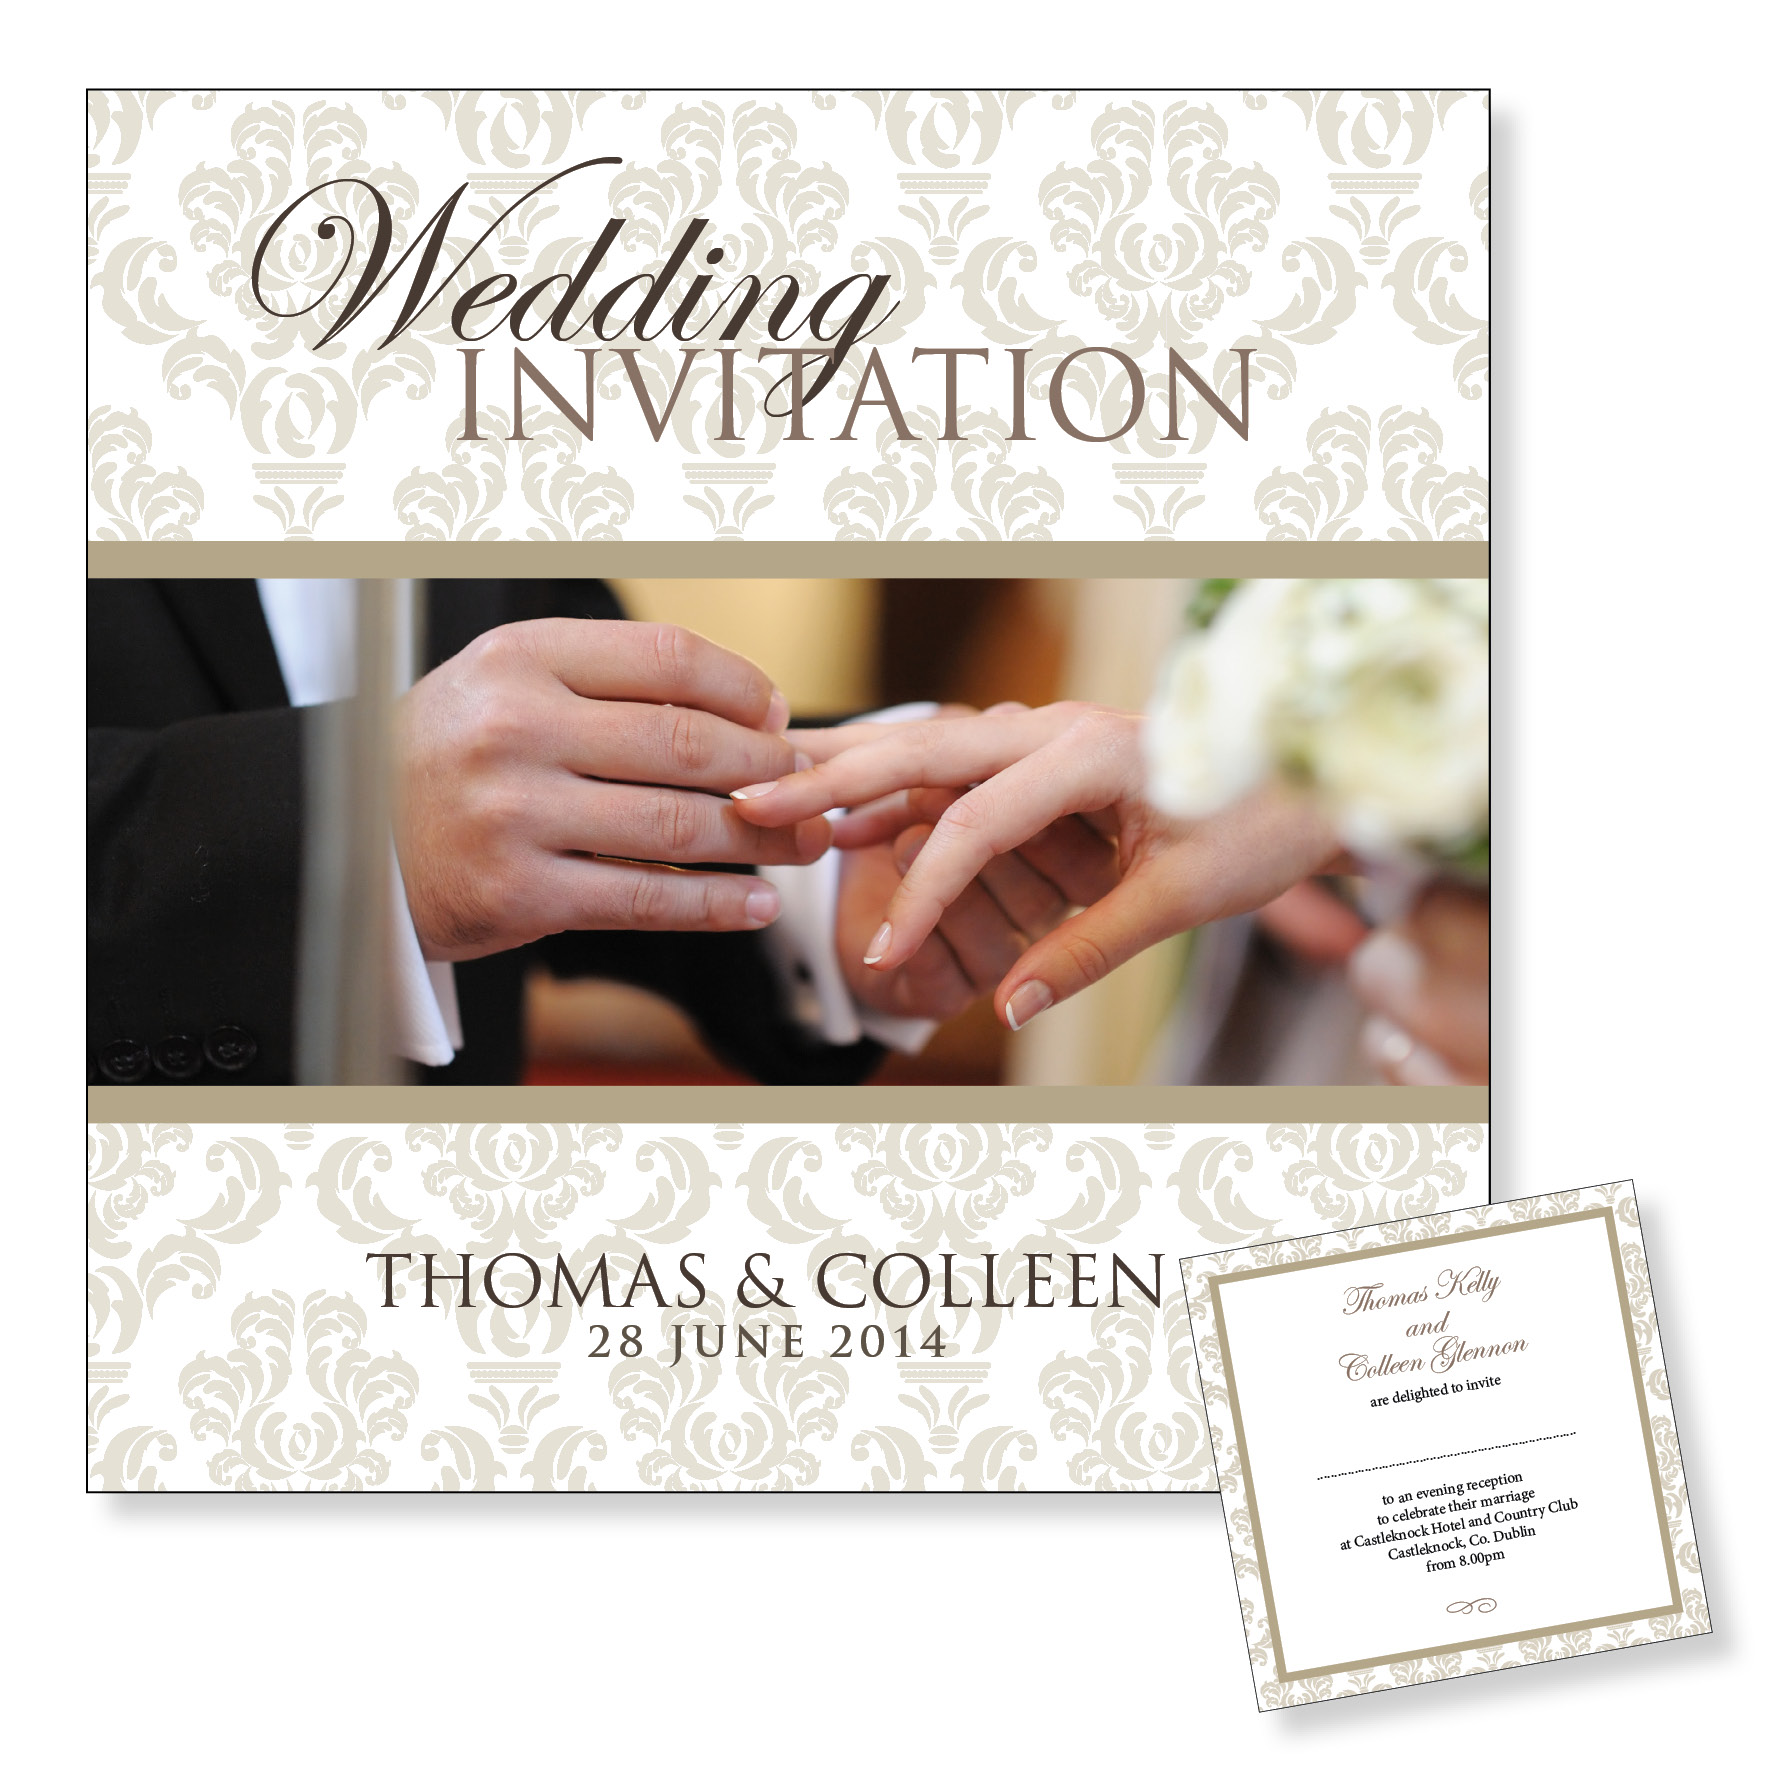 Evening wedding invitation - I do